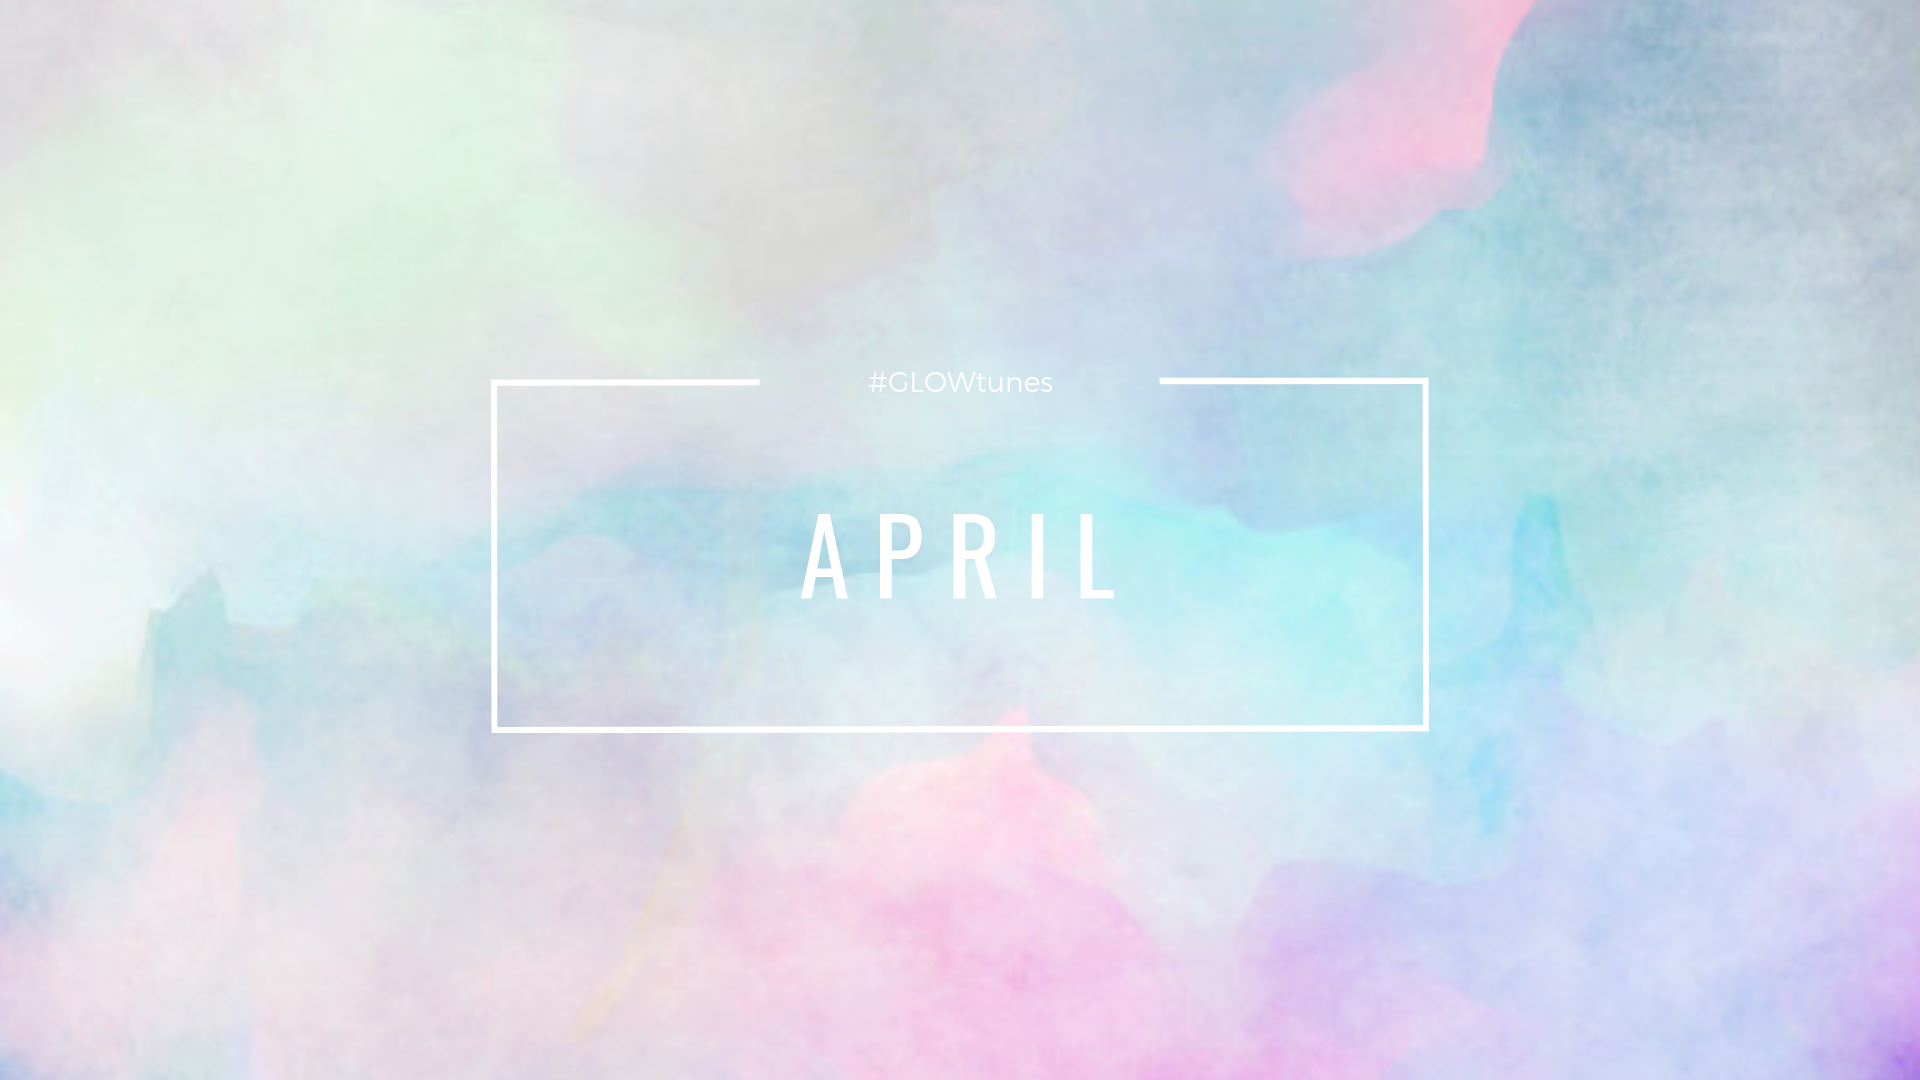 Here is the April 2019 #GLOWtunes playlist, for your listening pleasure. Straight from your glow girls. As music-obsessed chicks, we're excited to share with you a mix of tunes that we love. Some rap, chill, hip hop, electronic, and just good beats.  ENJOY xx  LISTEN HERE ::  https://open.spotify.com/user/howyouglow/playlist/7gsUmaA6osbhof2iAGtEuN?si=OLBi5T7pQc6aVX6hzYdMJg